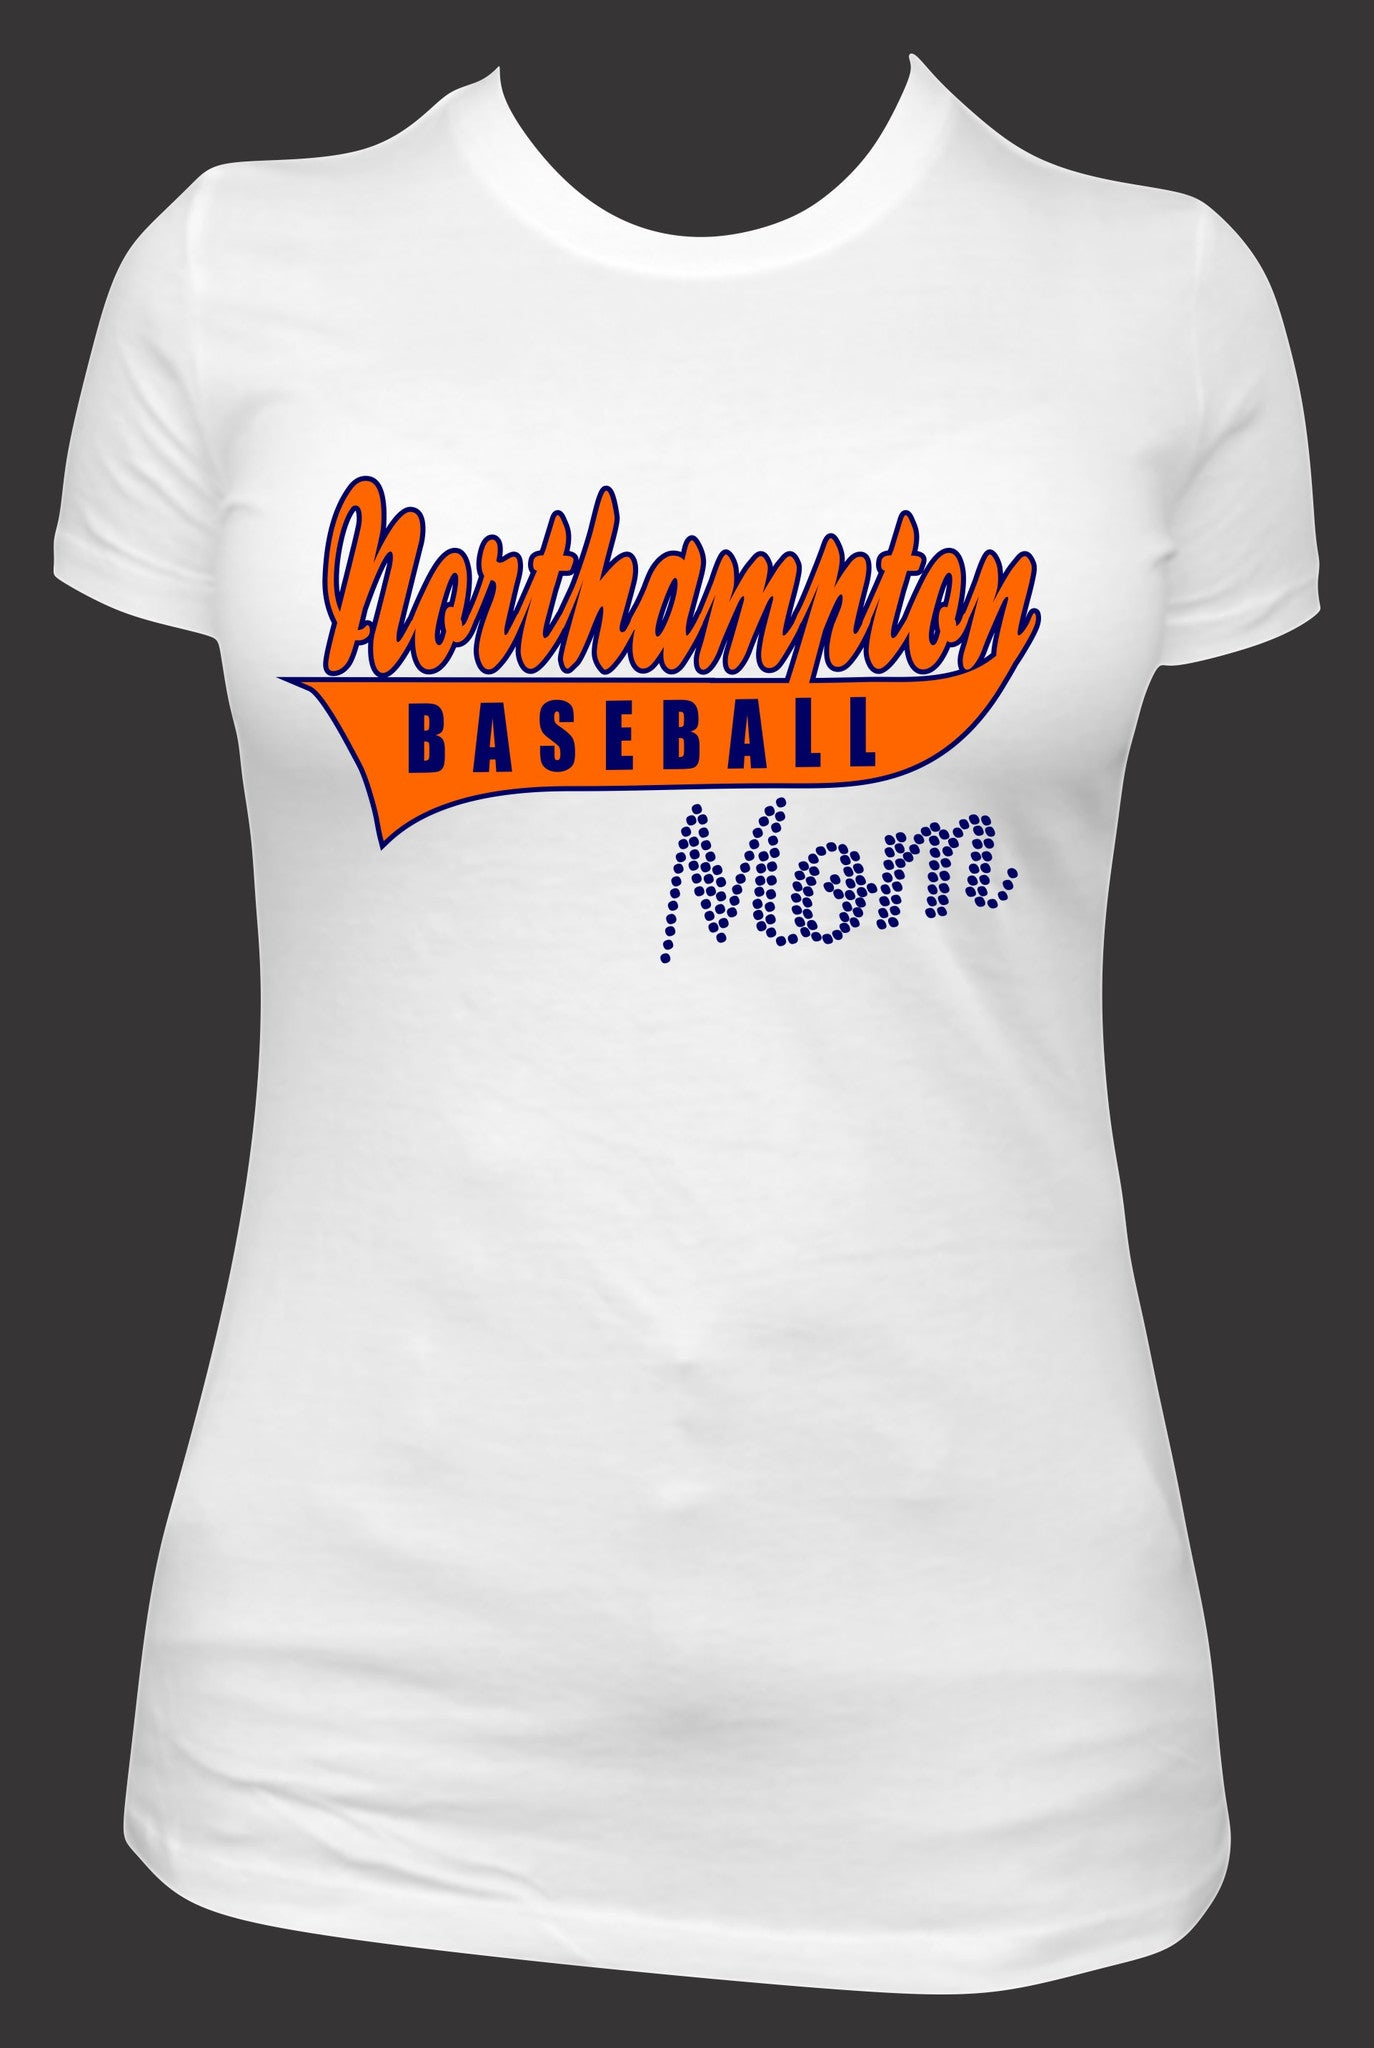 Northampton Baseball Mom T-Shirt